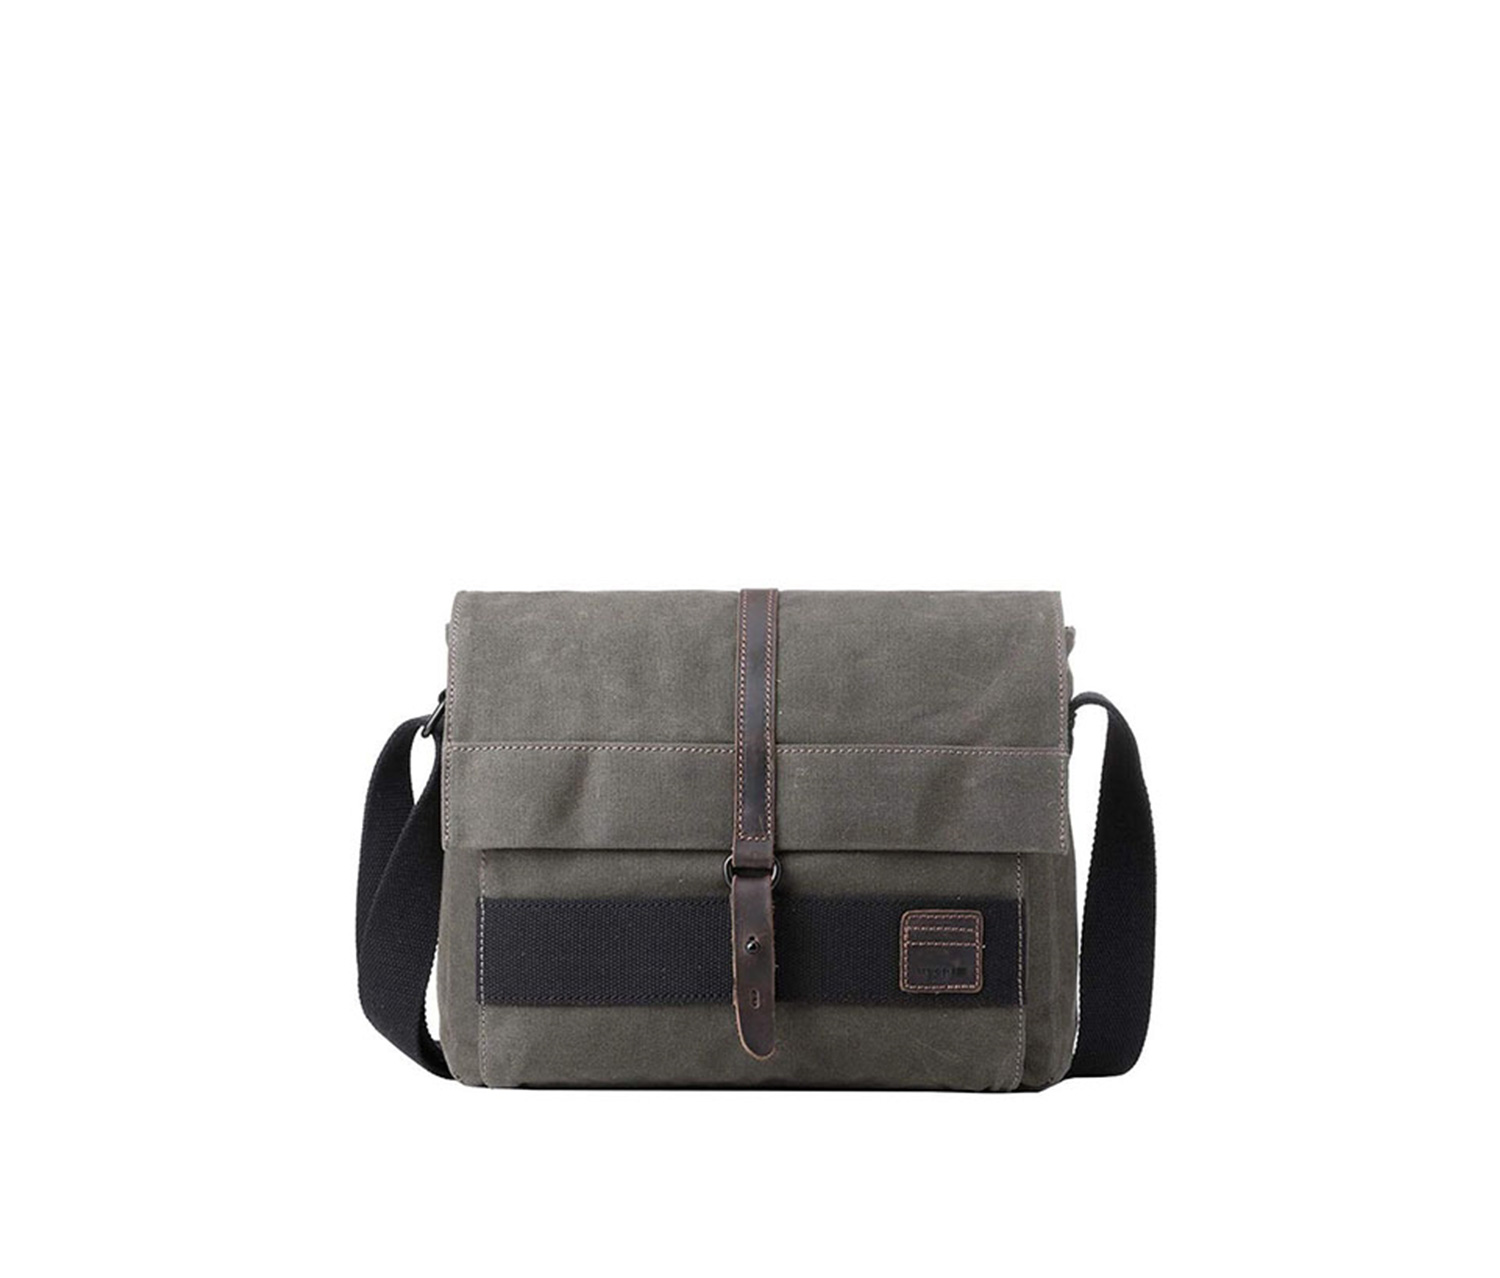 Troop London Heritage Canvas Messenger Bag Leather, Olive